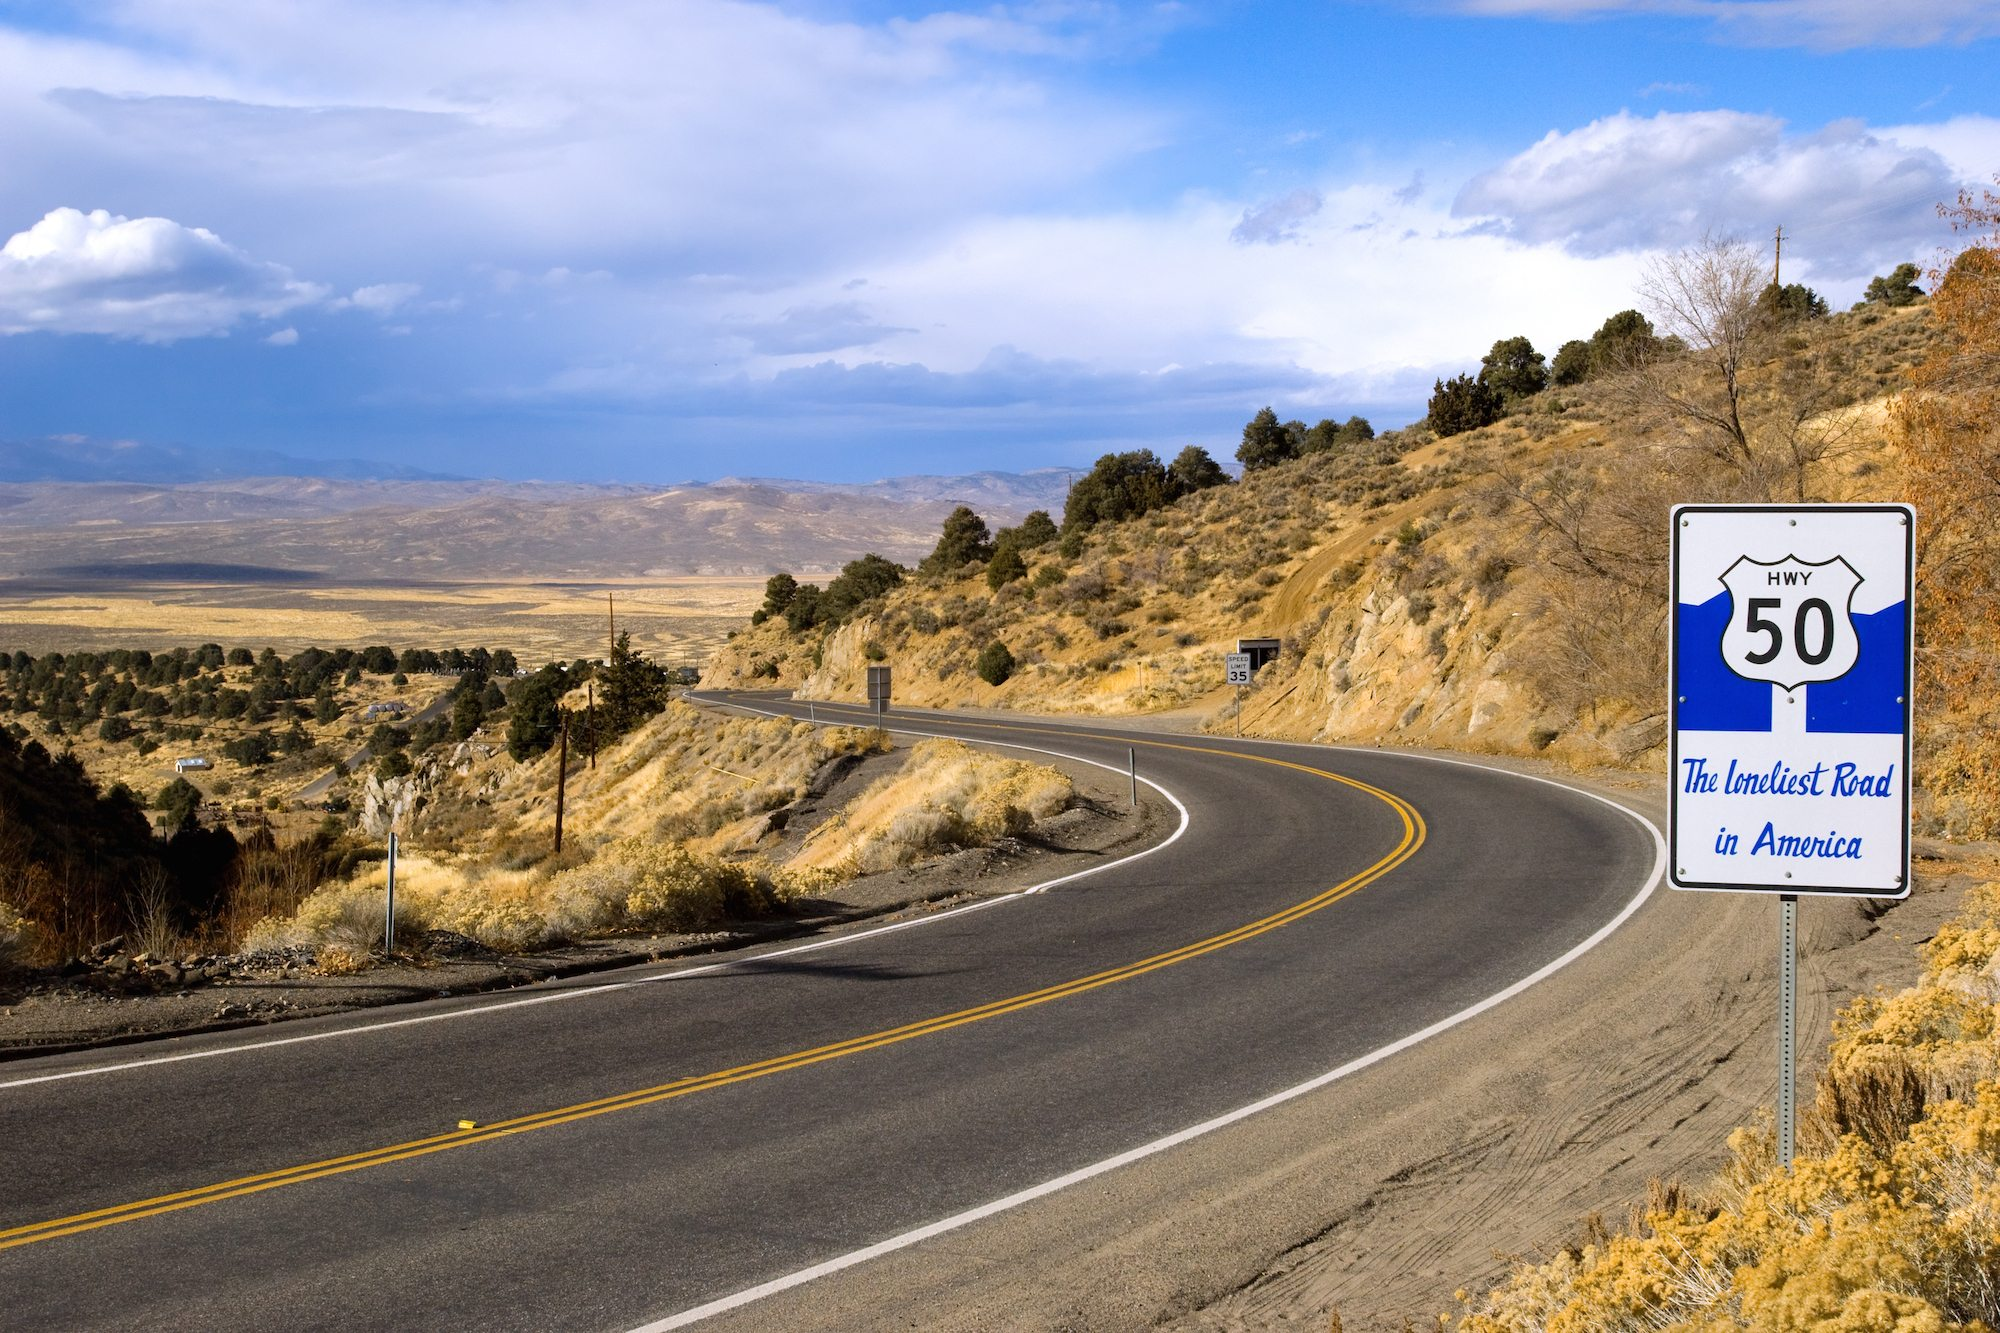 Highway 50: The Loneliest Road